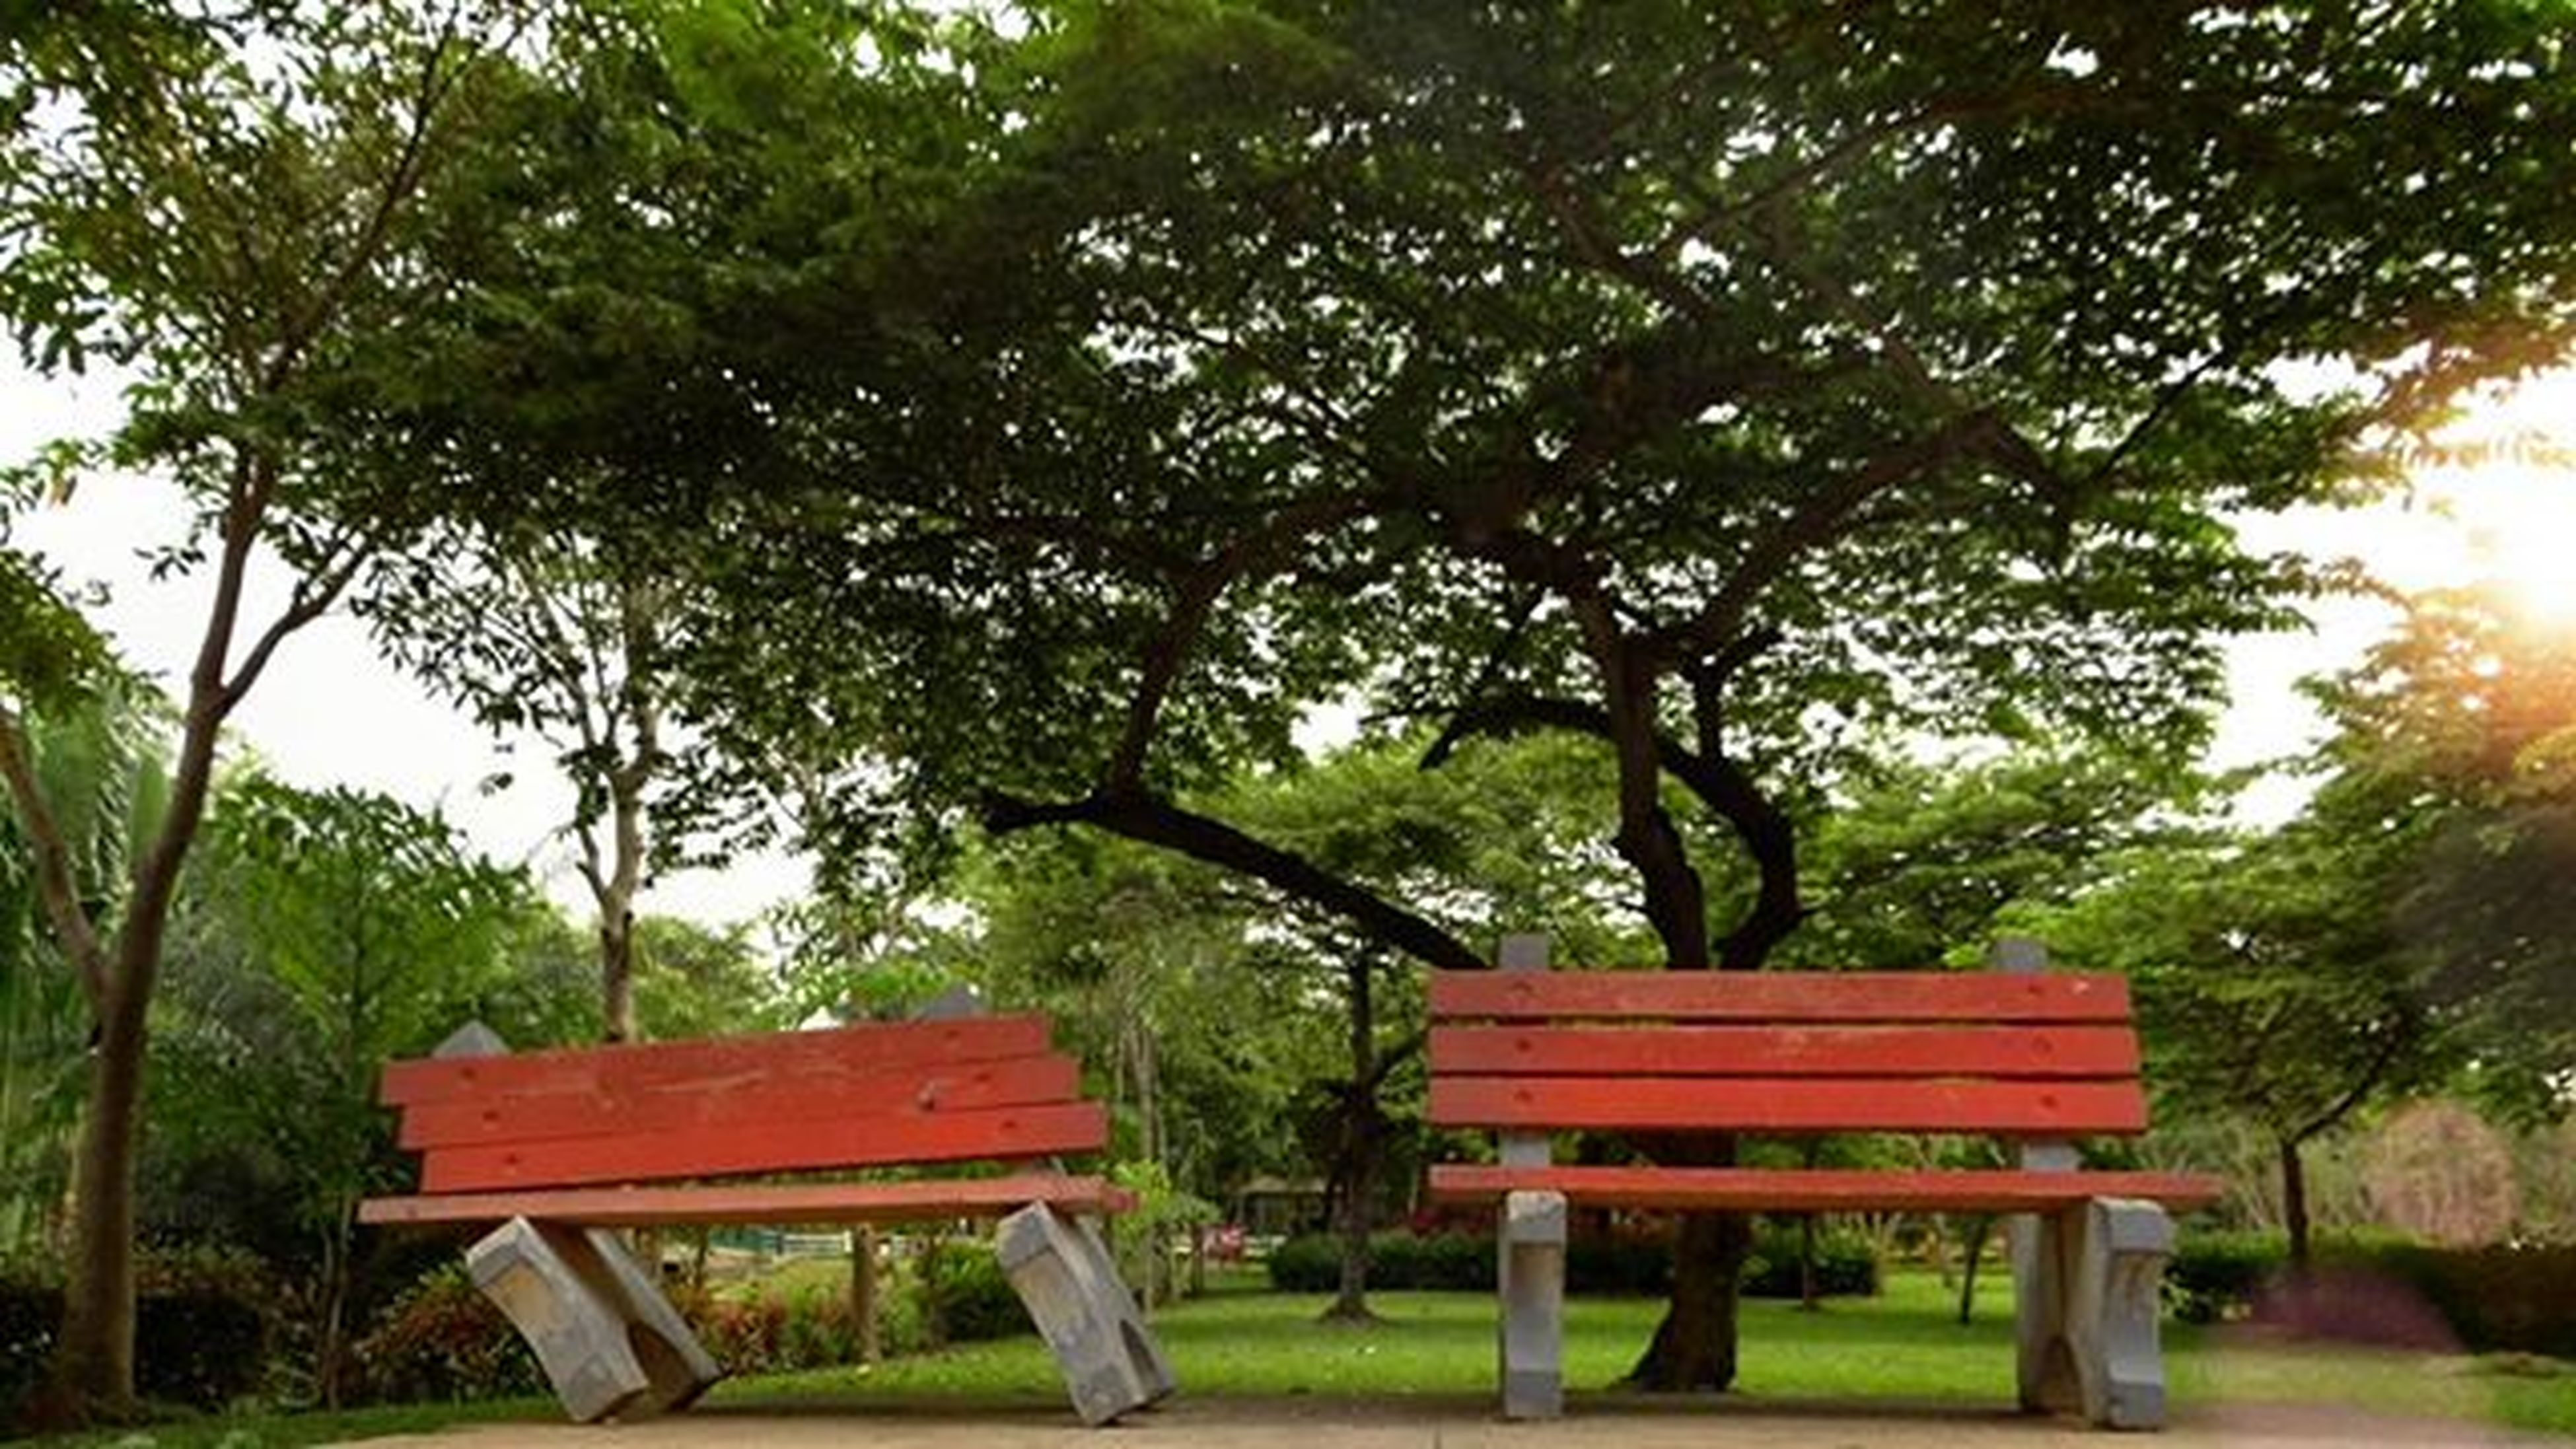 tree, bench, wood - material, growth, park bench, park - man made space, empty, green color, tranquility, wooden, absence, nature, grass, wood, chair, tranquil scene, outdoors, branch, day, sunlight